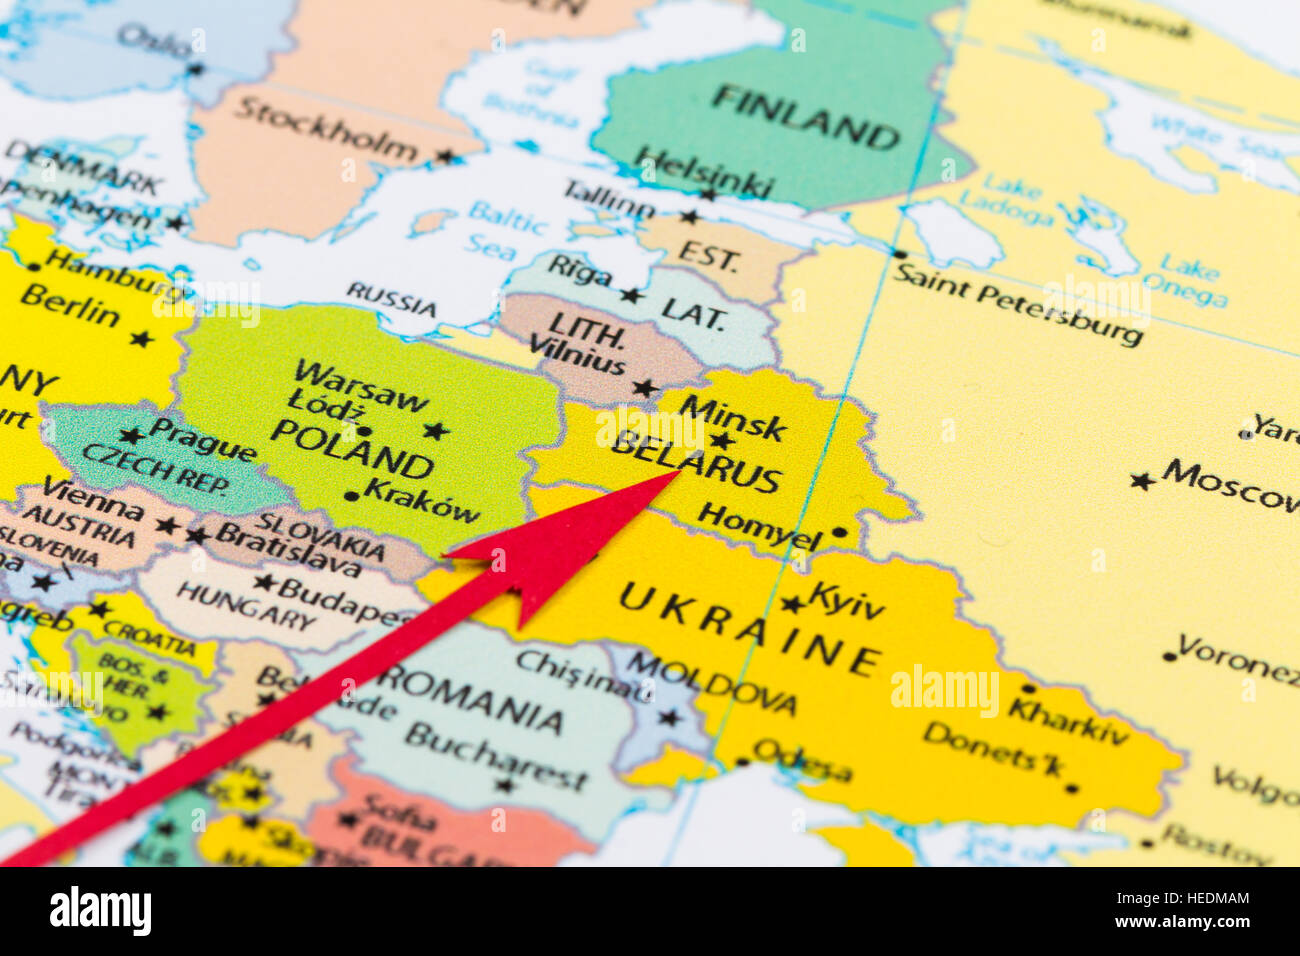 Red arrow pointing belarus on the map of europe continent stock red arrow pointing belarus on the map of europe continent gumiabroncs Choice Image